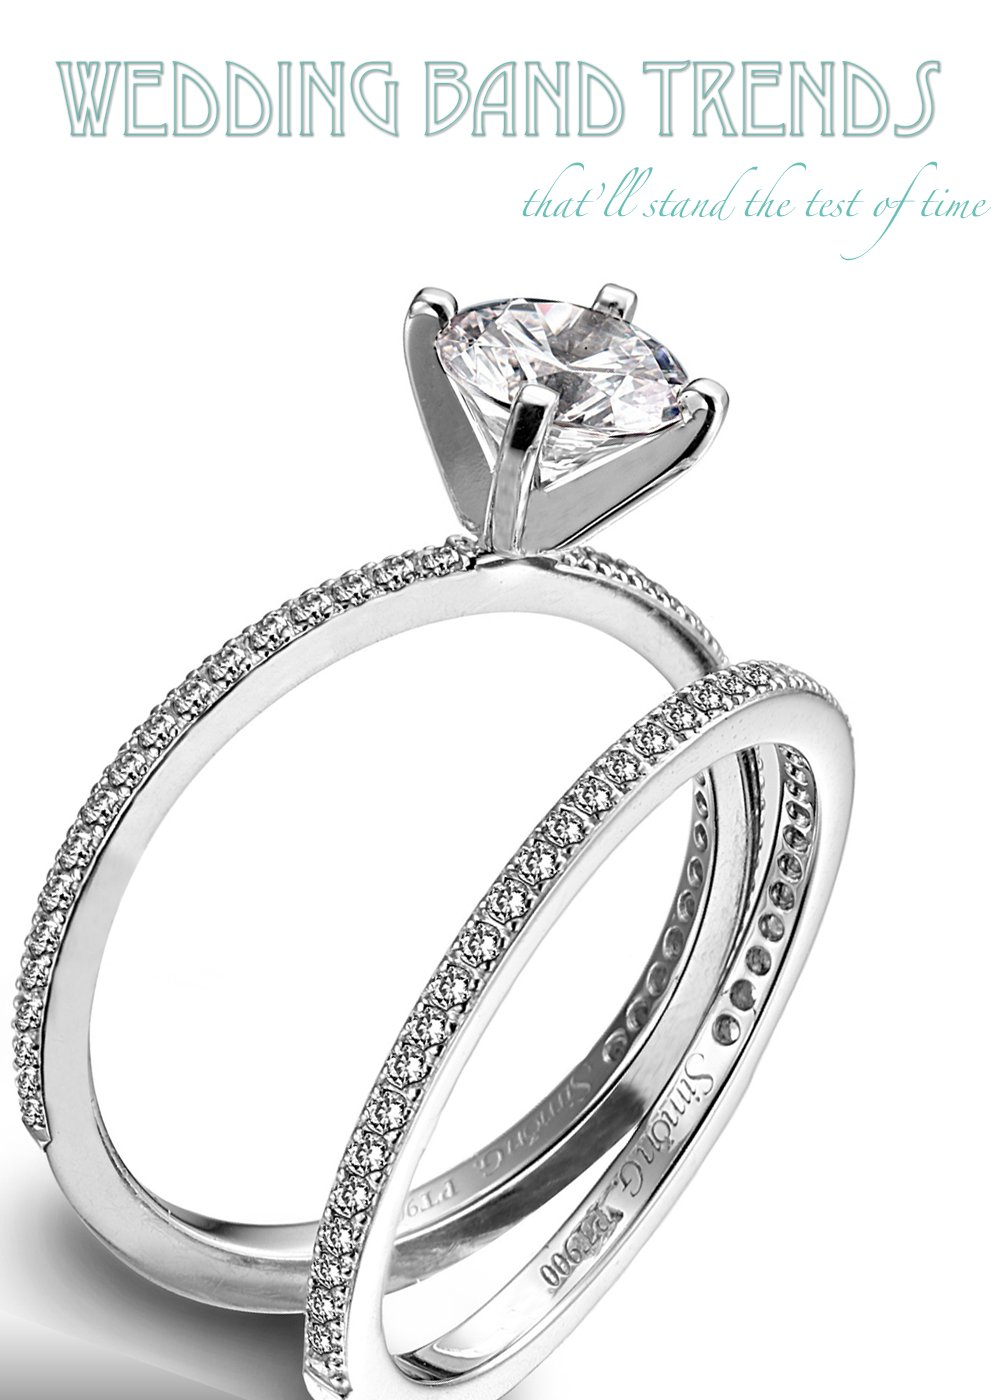 diamond and platinum engagement ring and wedding band set by simon g wedding ring band Top three wedding trends for platinum wedding bands and engagement rings